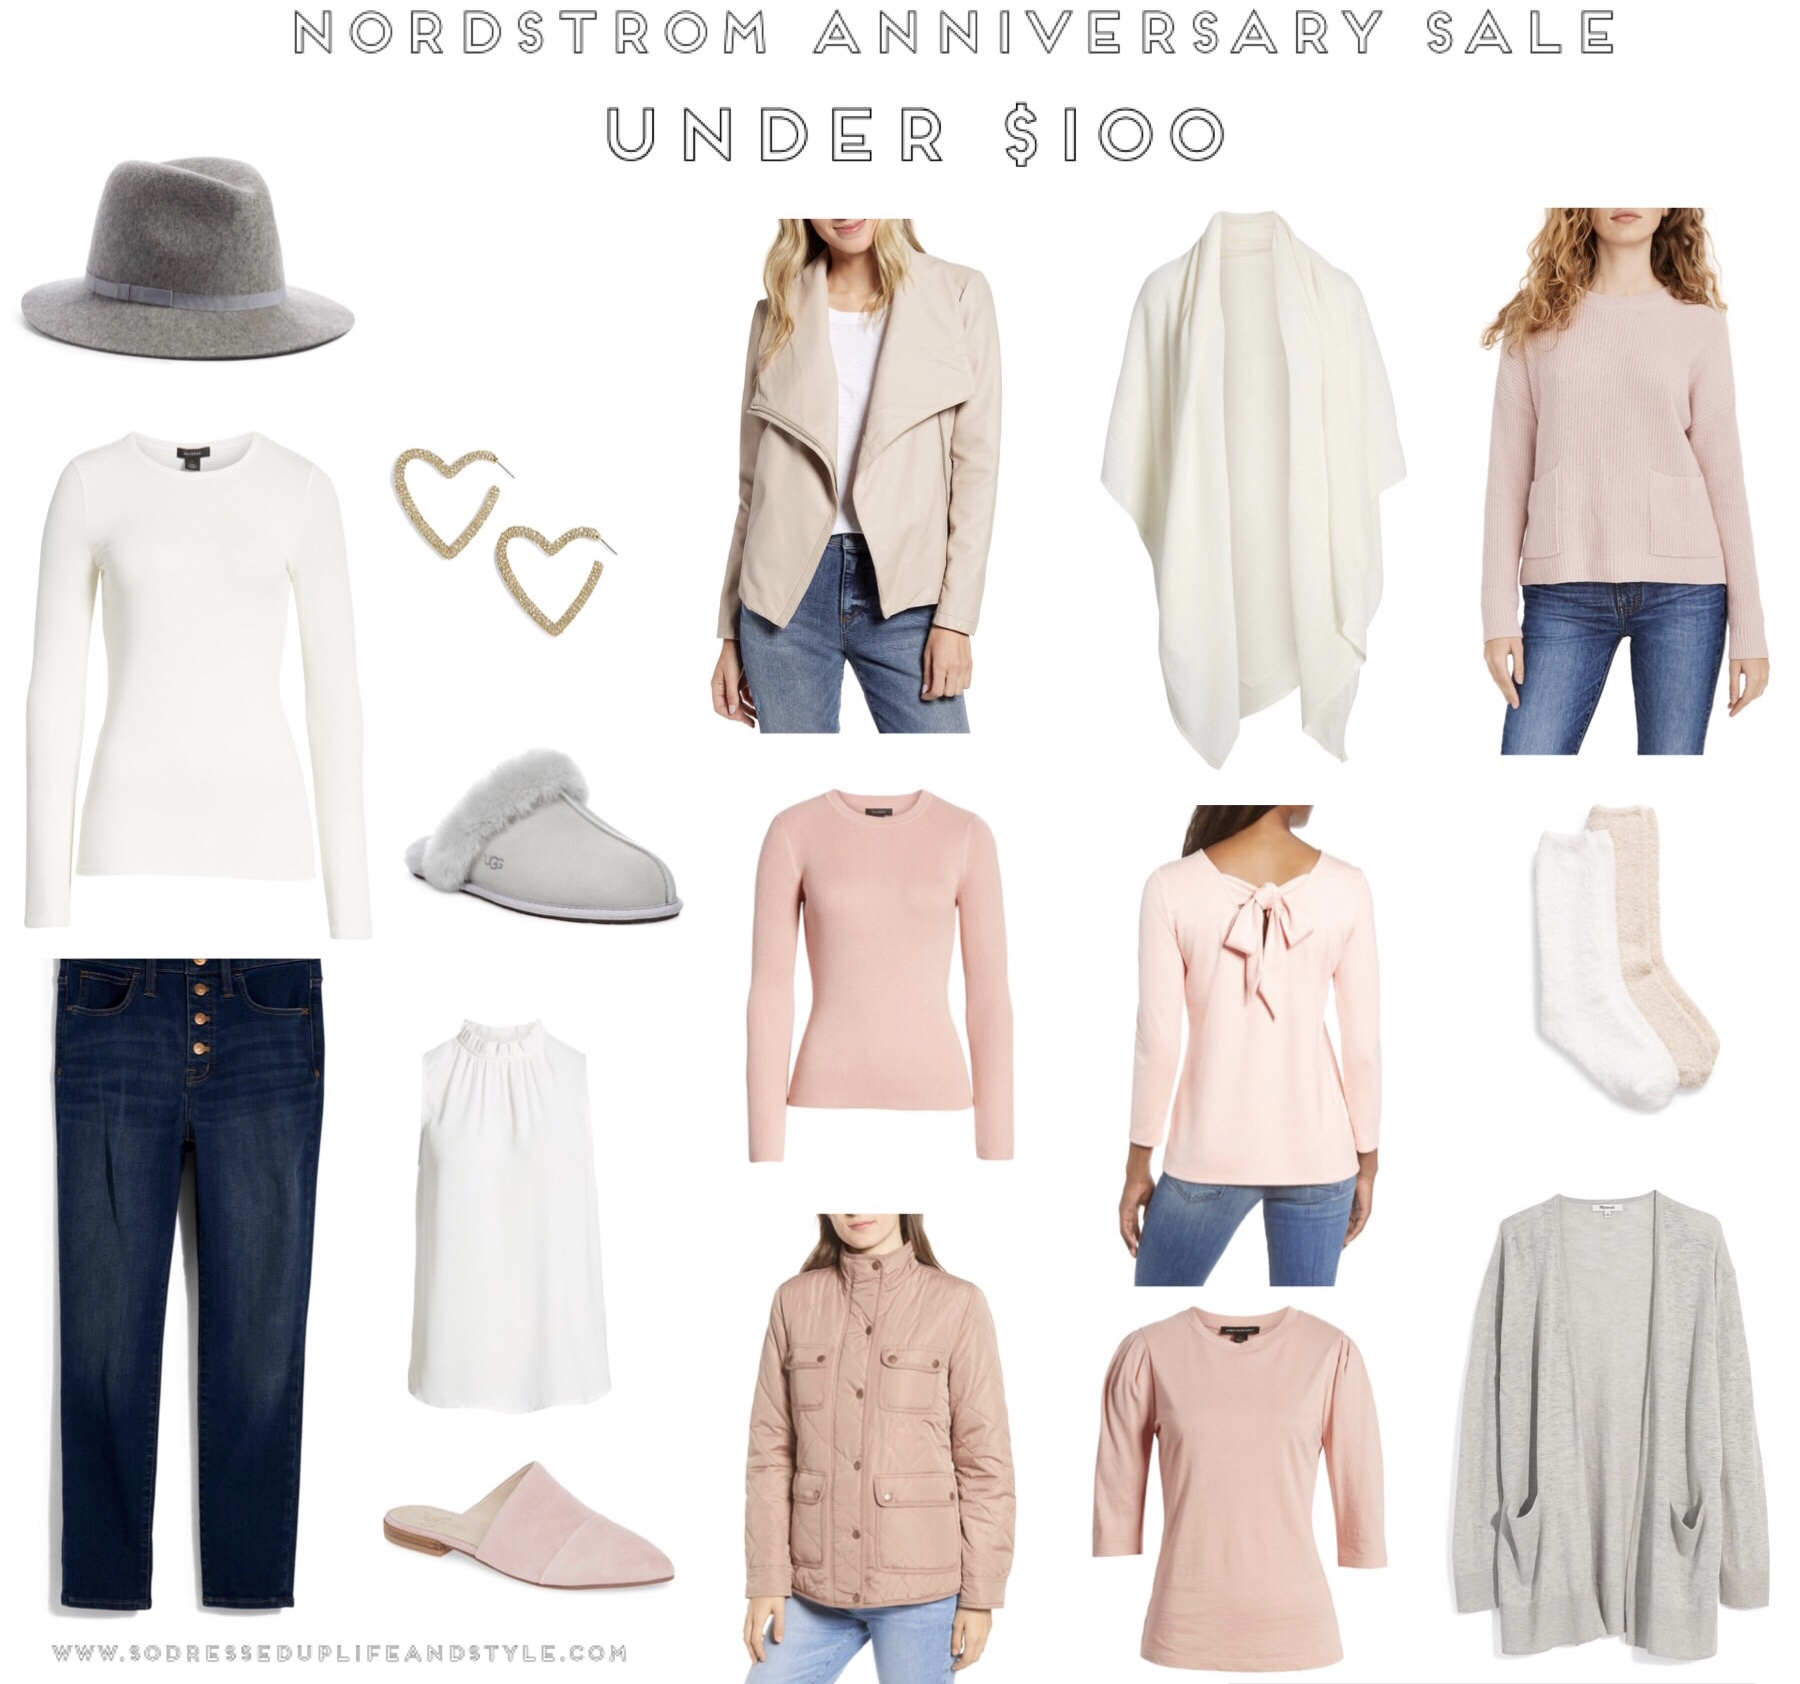 7730984881e Under $100! My Favorite Finds From the 2019 Nordstrom Anniversary ...